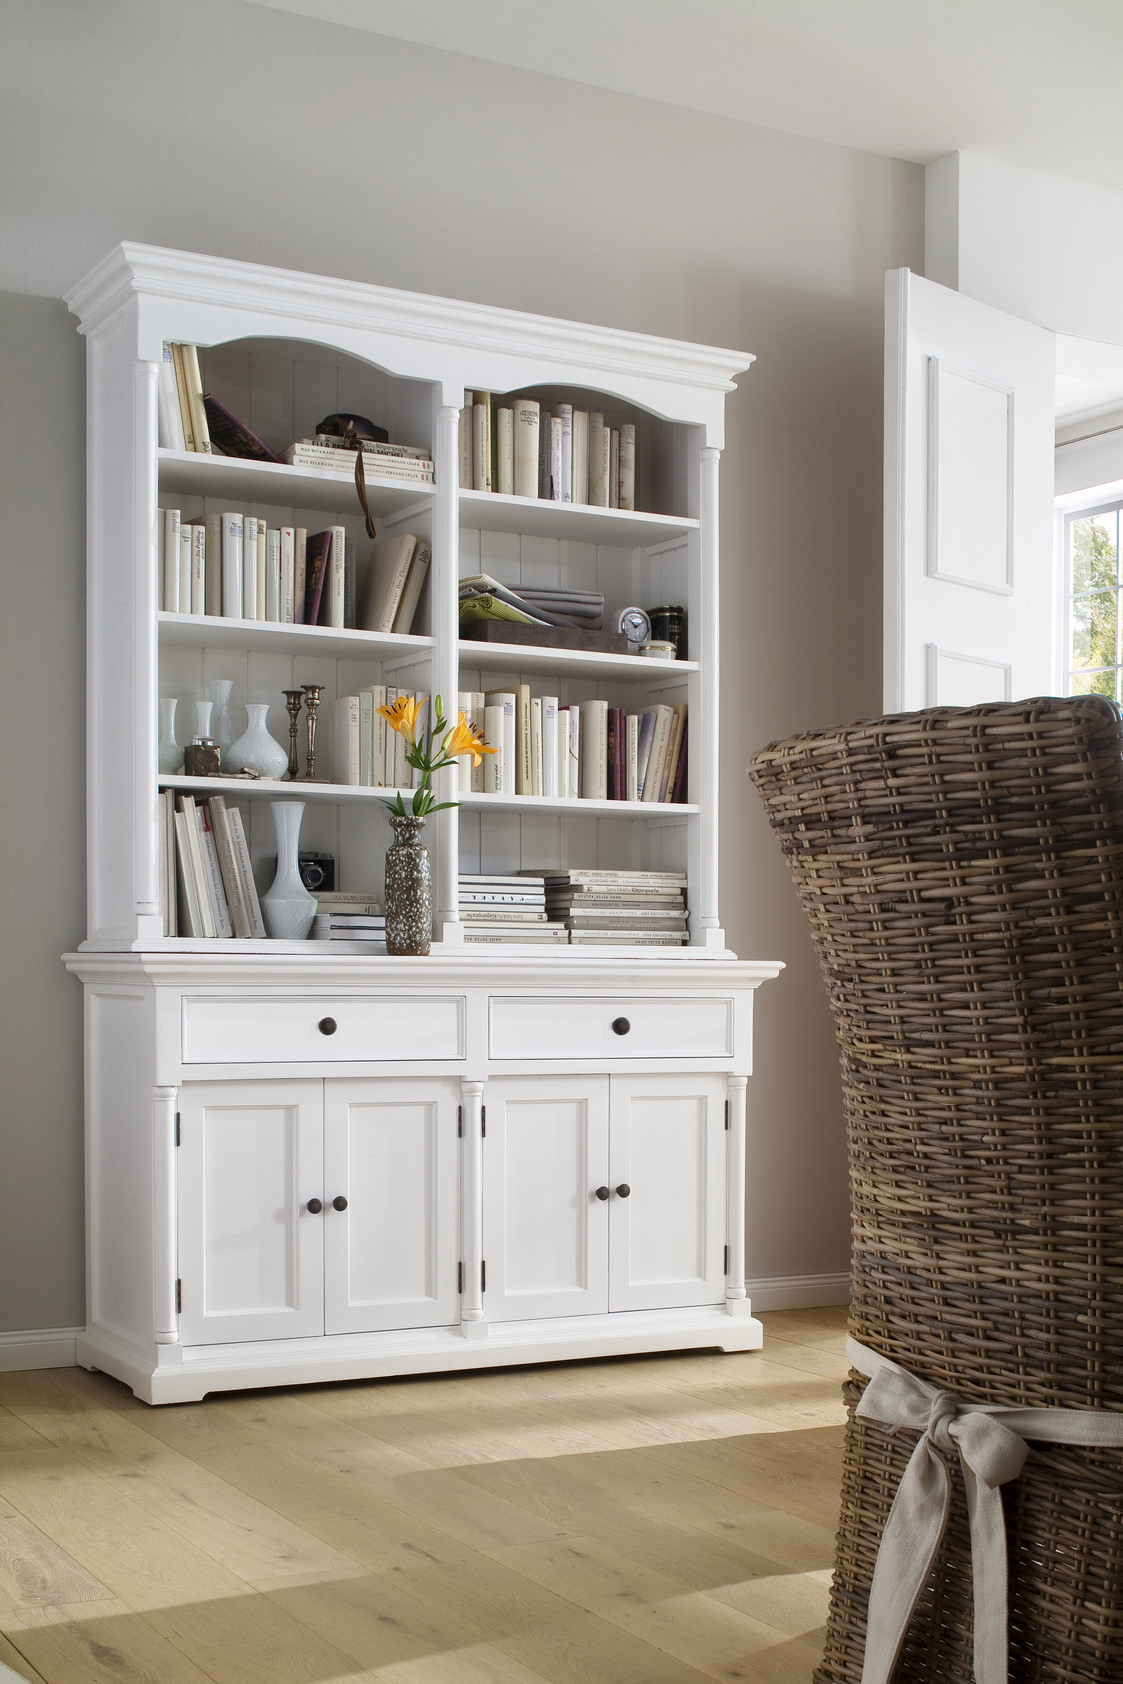 for cd home with buffet hutch appealing storage display to cabinet wood doors solid improvement apply kitchenappealing combine and hd unfinished decor beautiful oak tempting cabinets